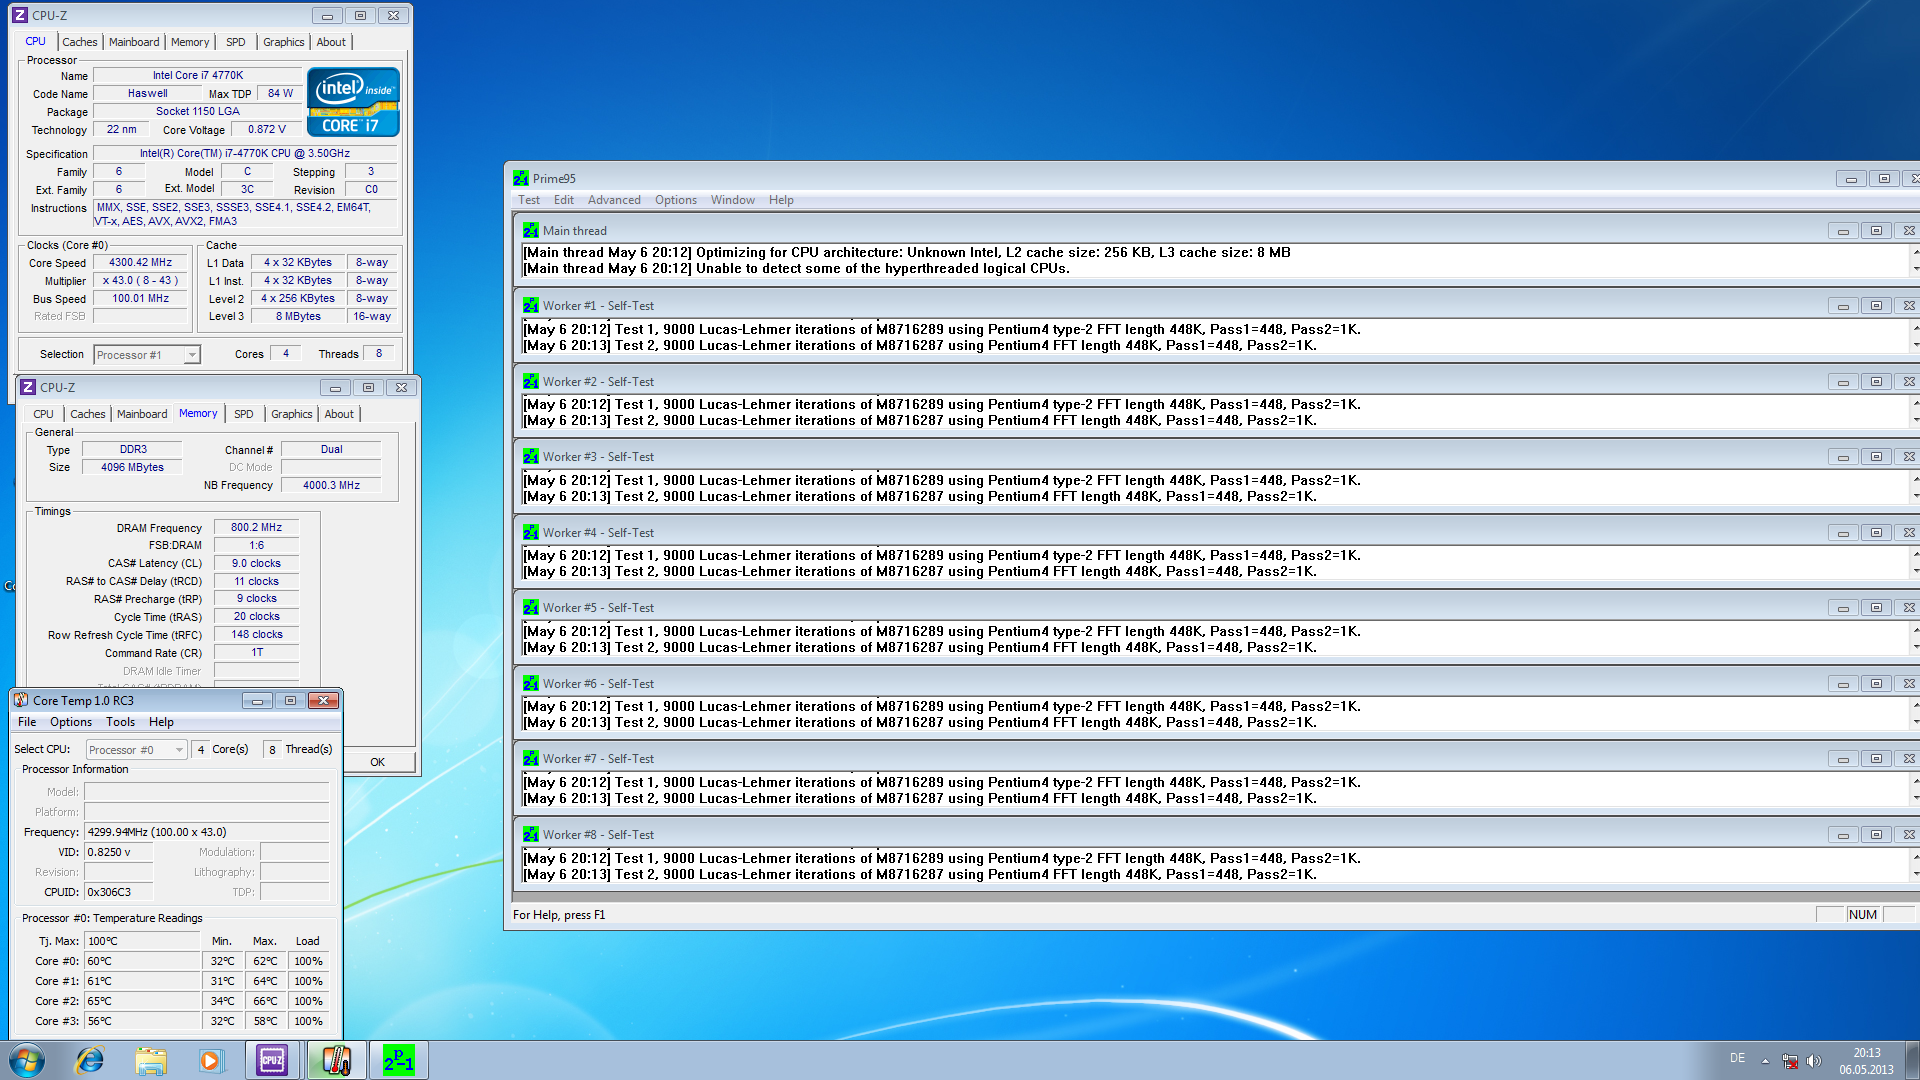 [HowTo] Intel Haswell OC Guide inkl. Haswell CPU OC-Liste-4300oc.png